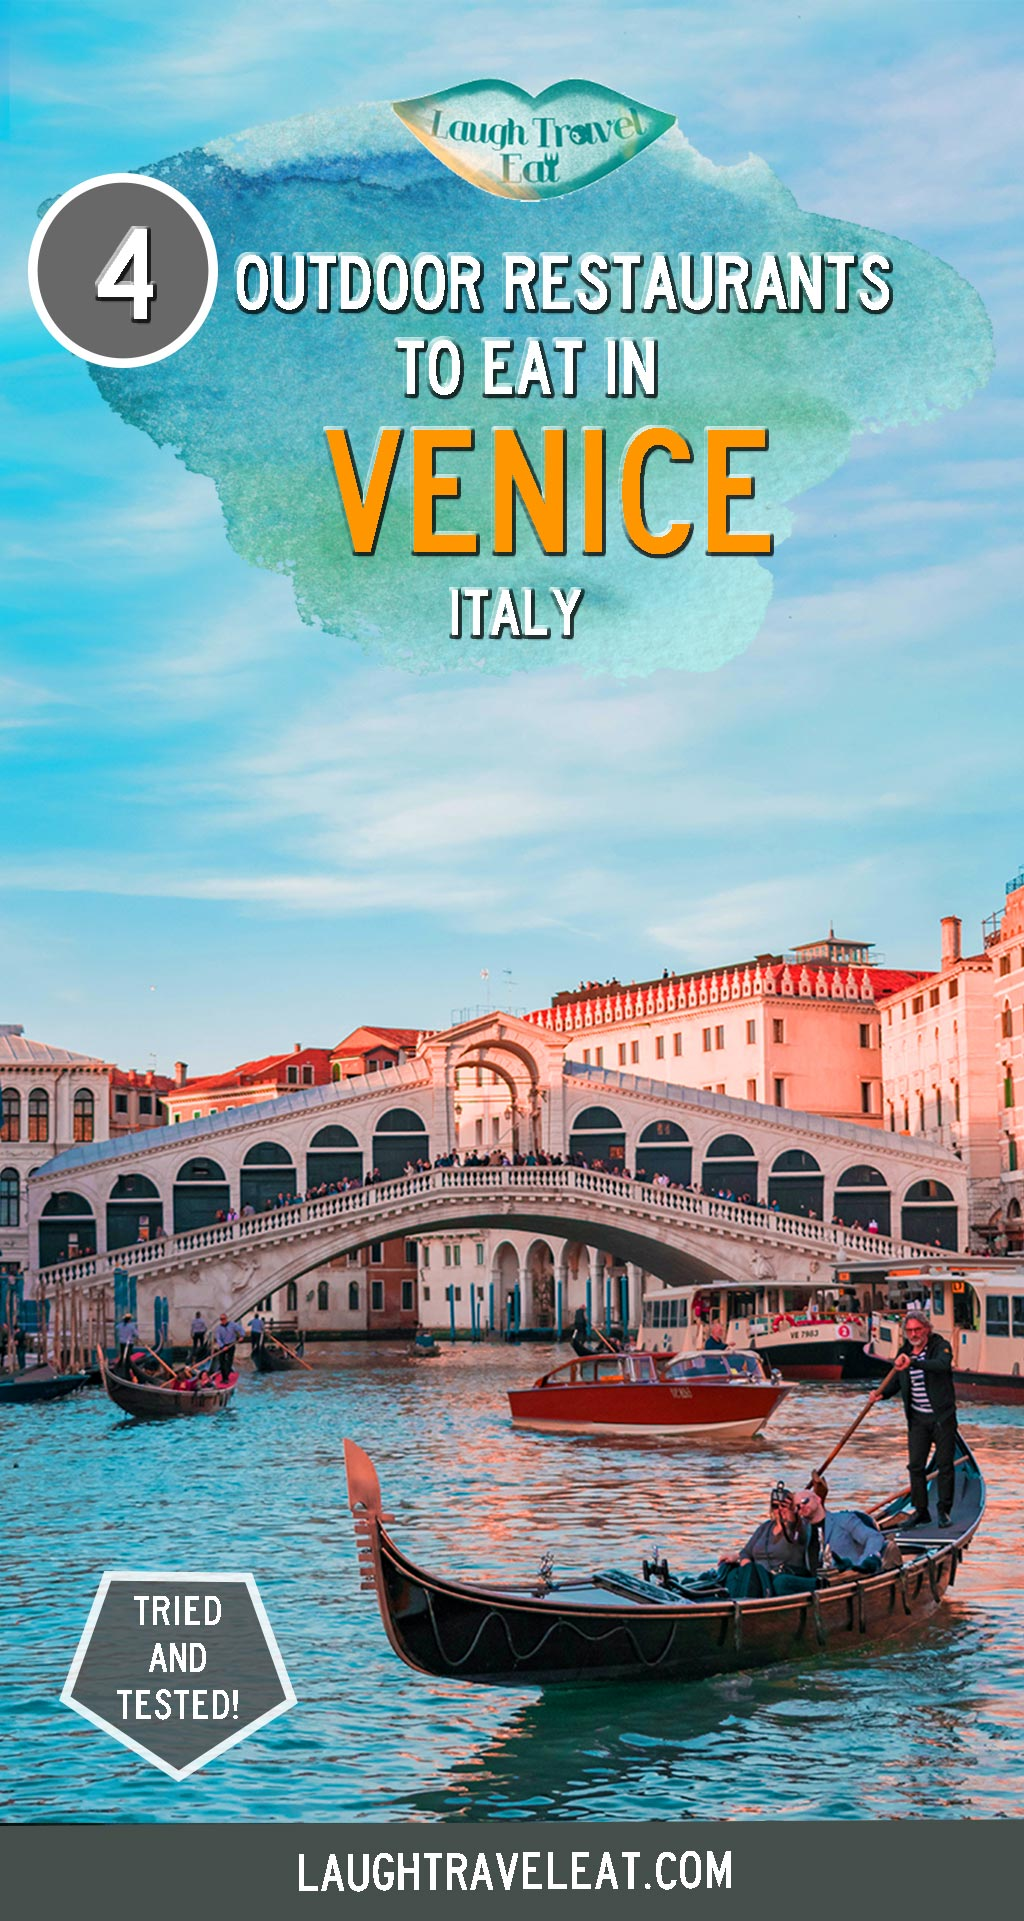 Venice is a picturesque city in itself, but there are some better than others. To fully enjoy the atmosphere of Venice, here are 4 outdoor restaurants that would make for a perfect little lunch spot: #Venice #Italy #foodie